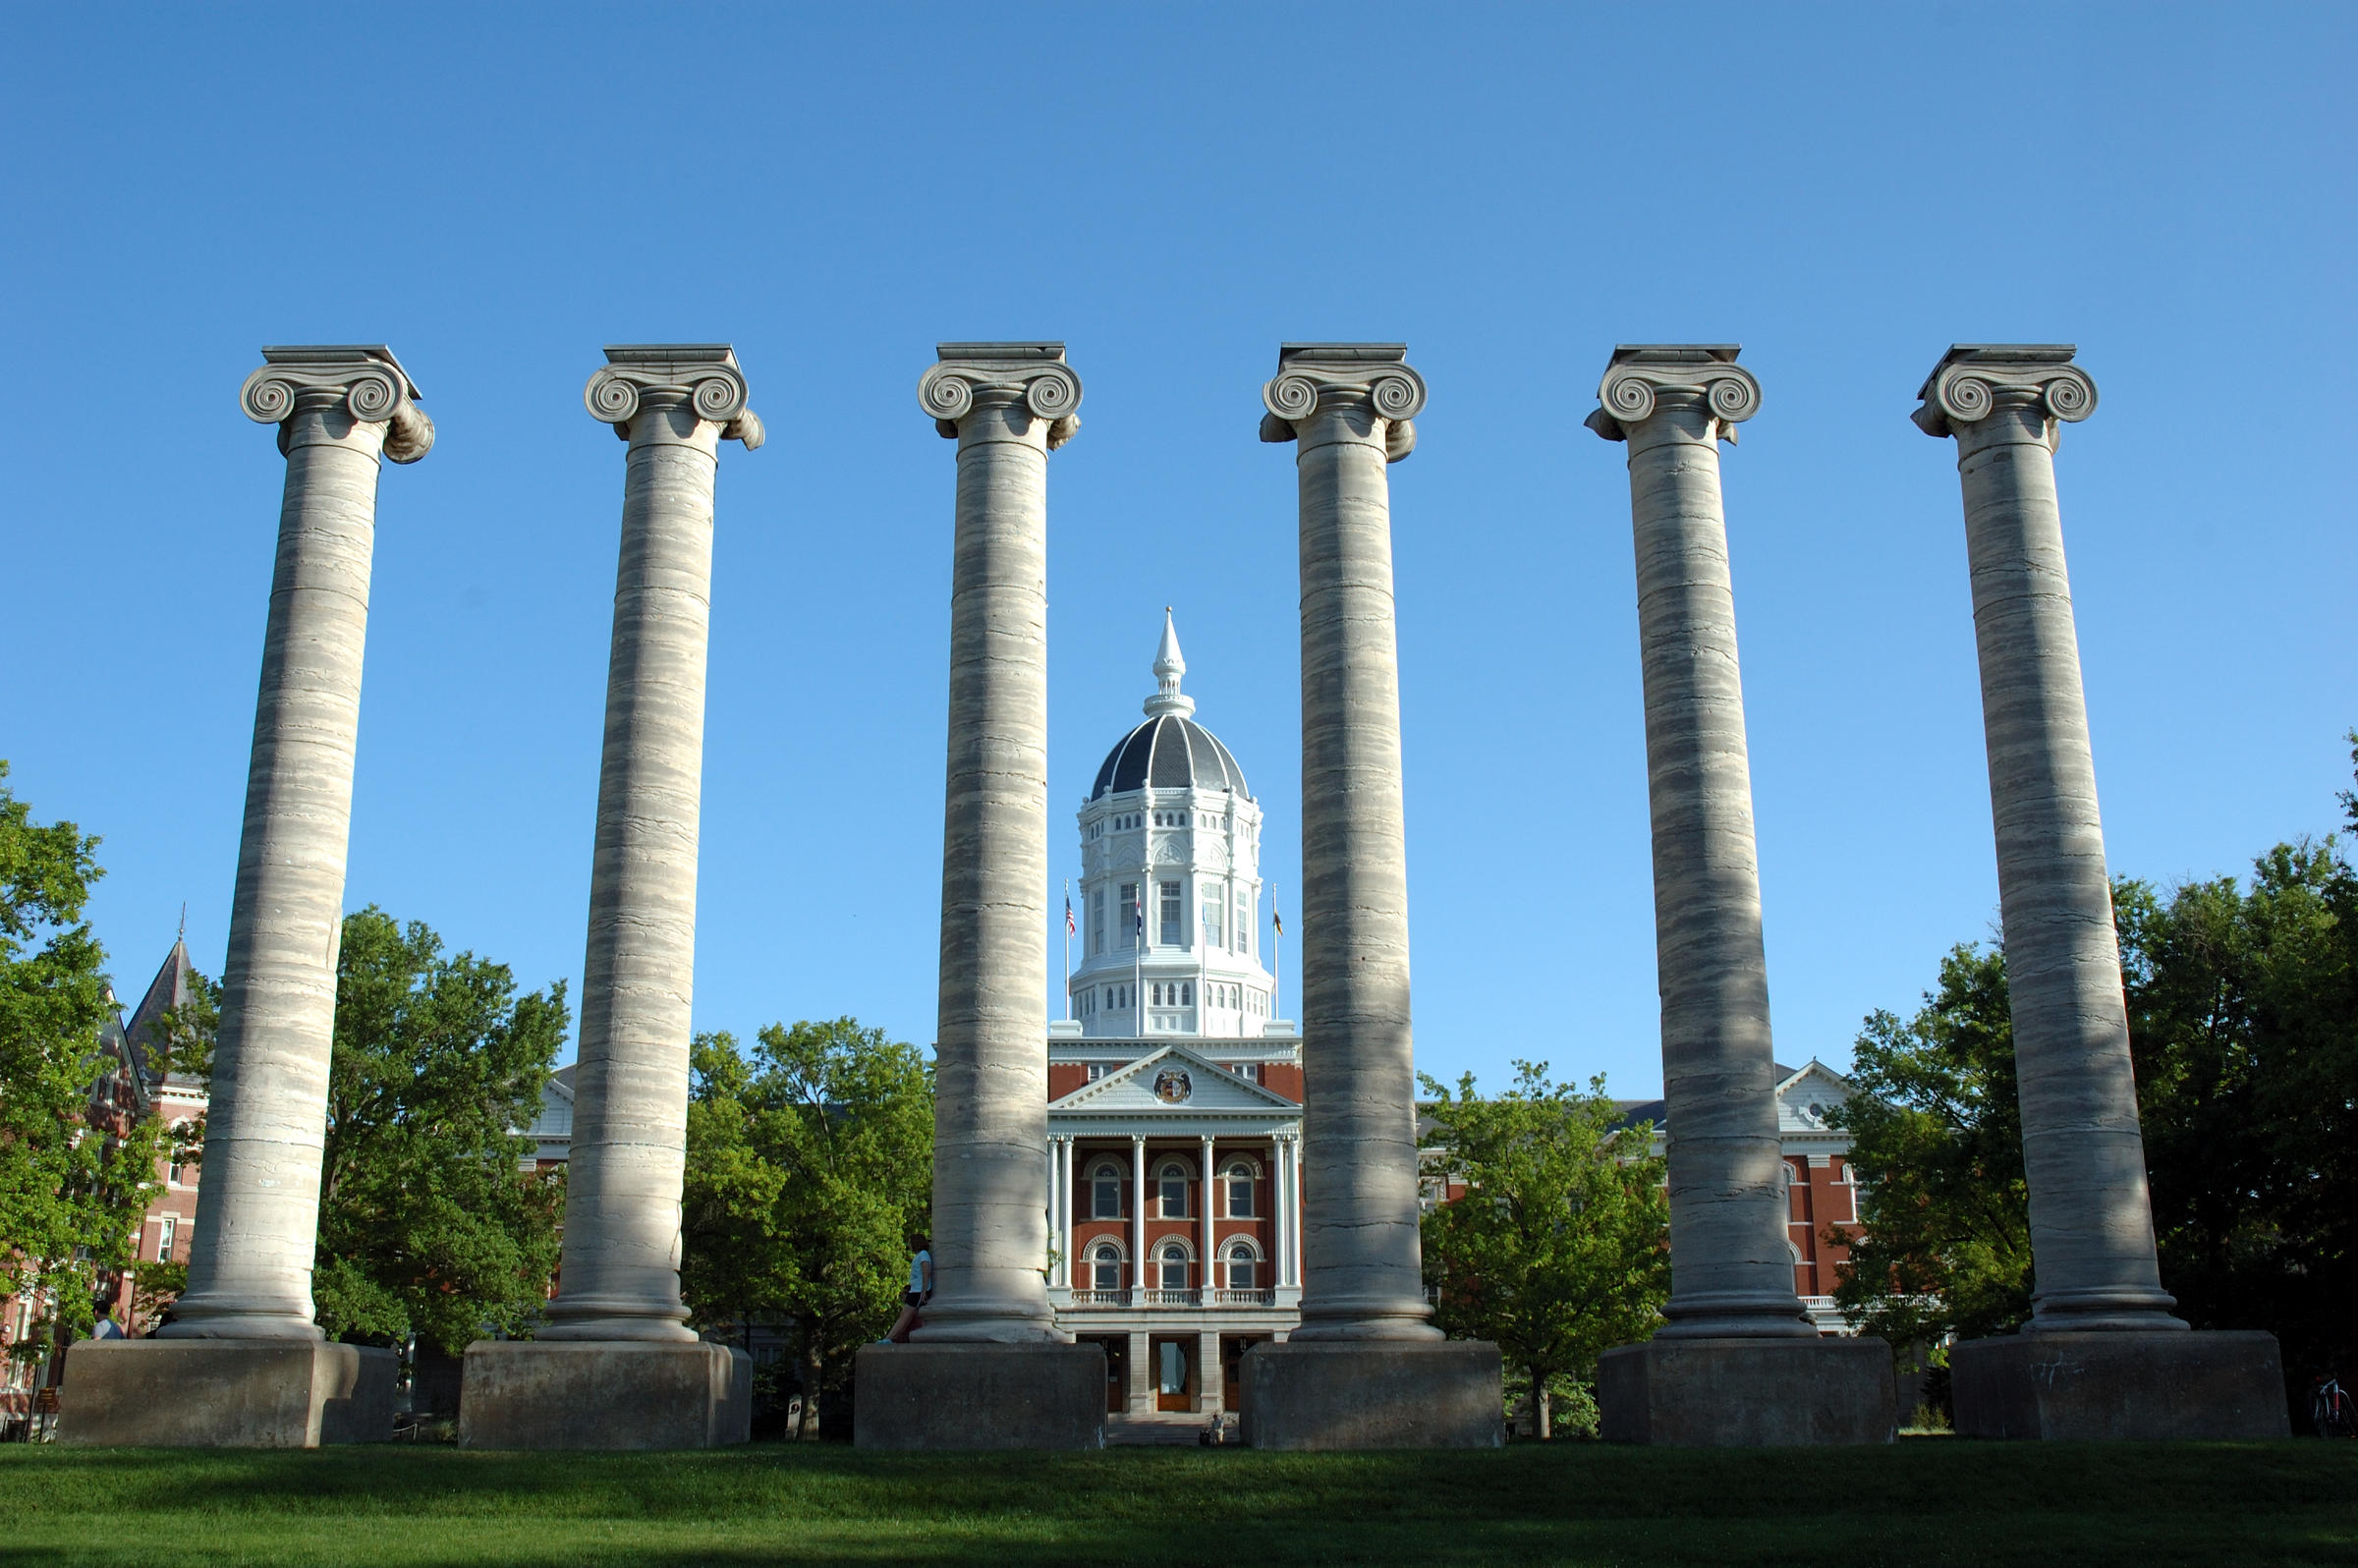 University Of Missouri Reports Third Highest Rate Of Sexual